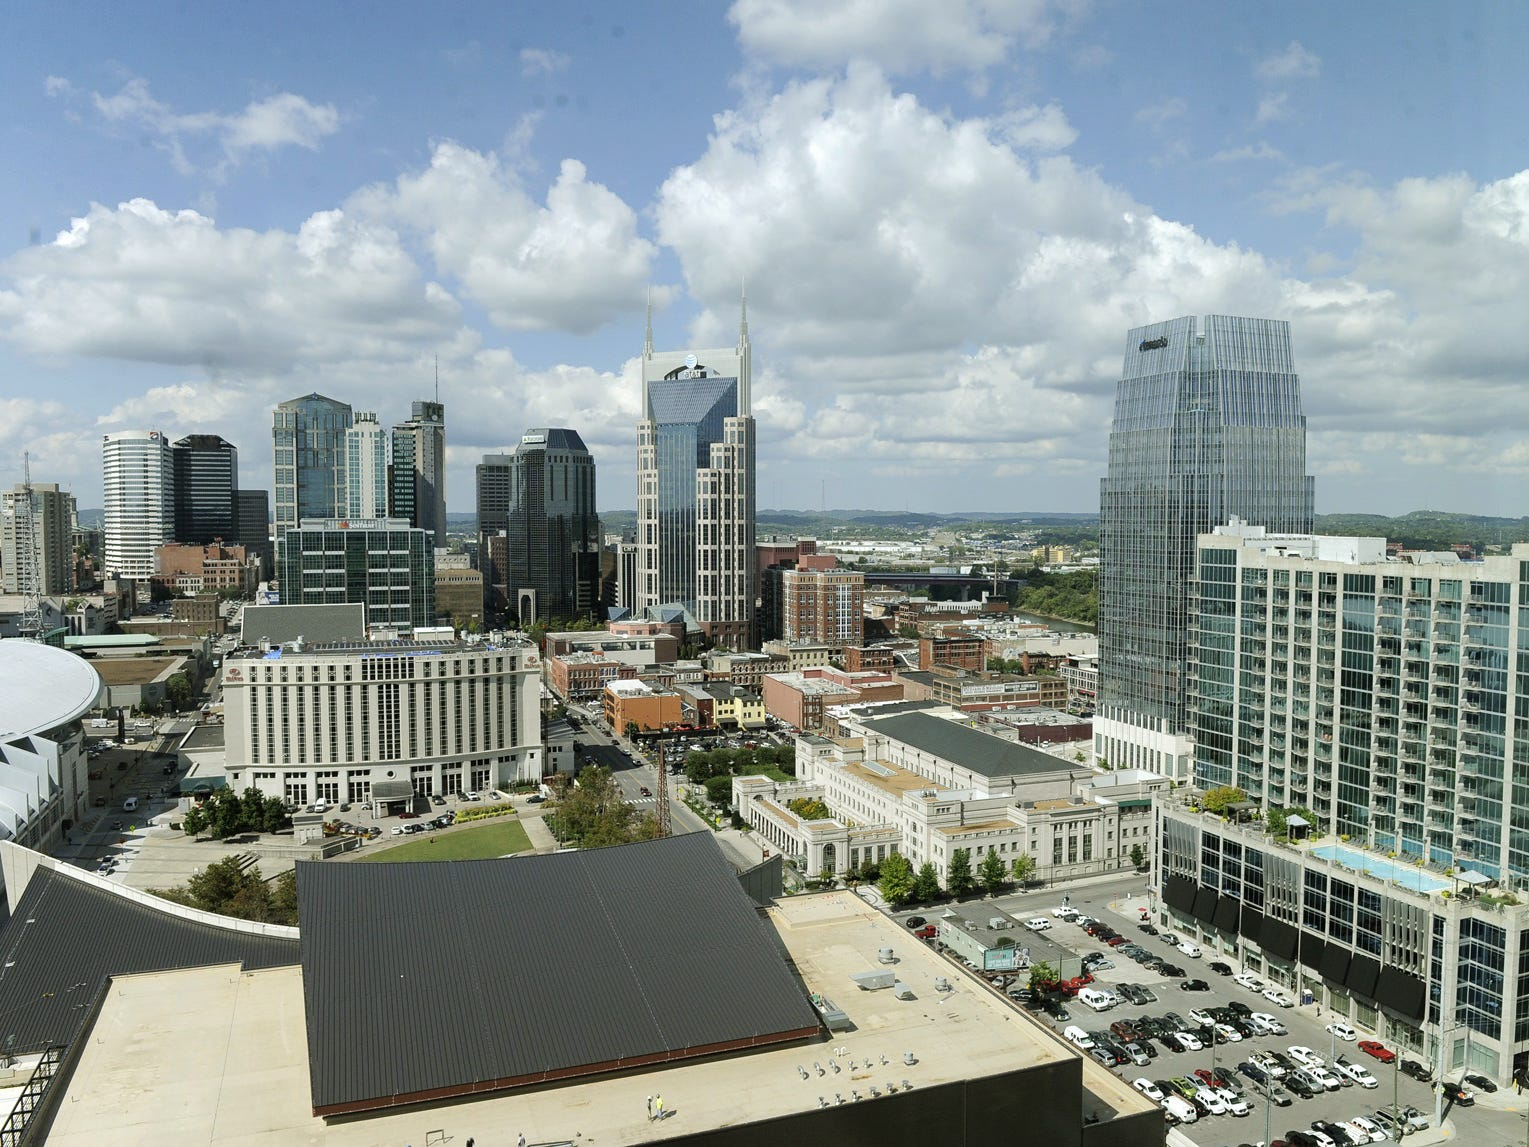 A view of the Nashville skyline on Sept. 25, 2013 from one of the presidential suites in the Omni Hotel, which is set to open on Sept. 30.